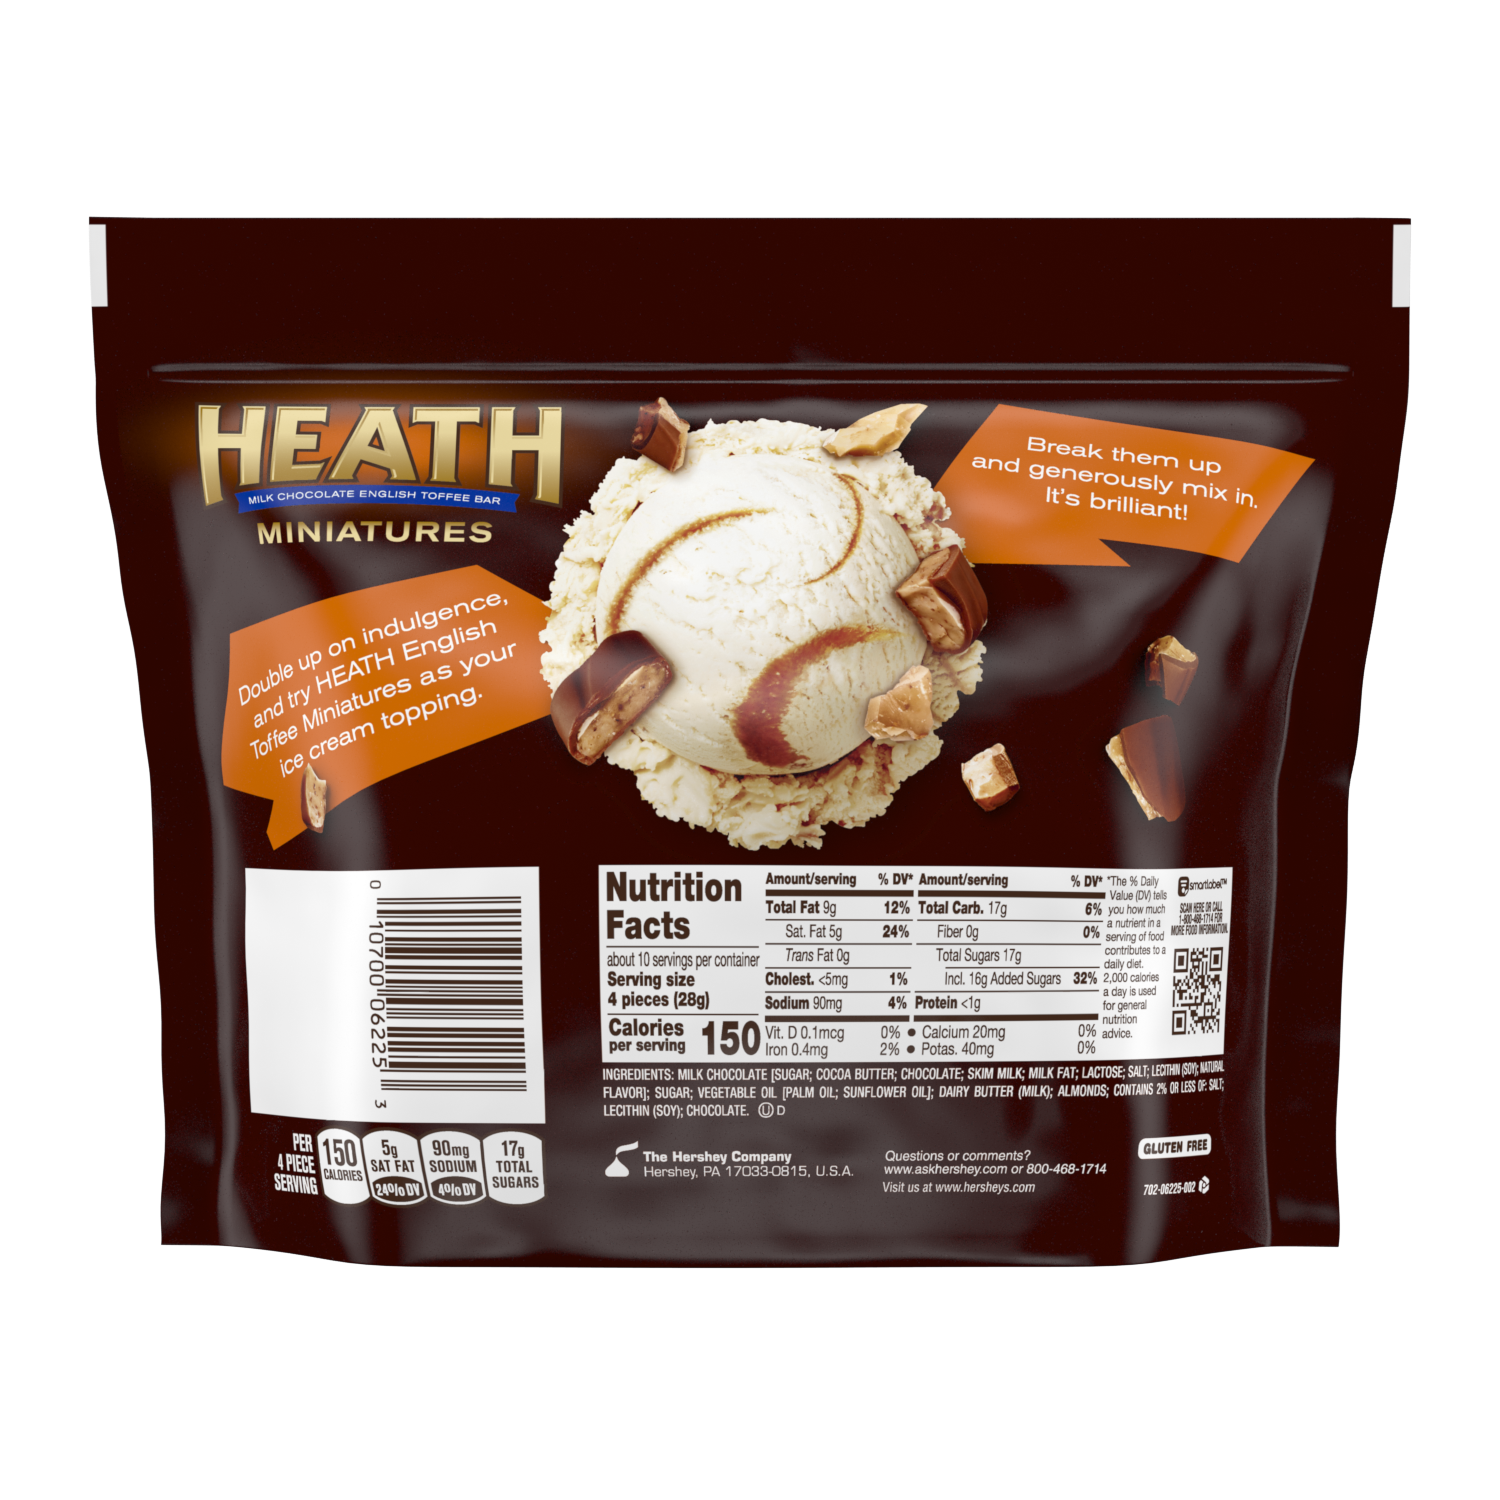 HEATH Miniatures Milk Chocolate English Toffee Candy Bars, 10.2 oz bag - Back of Package